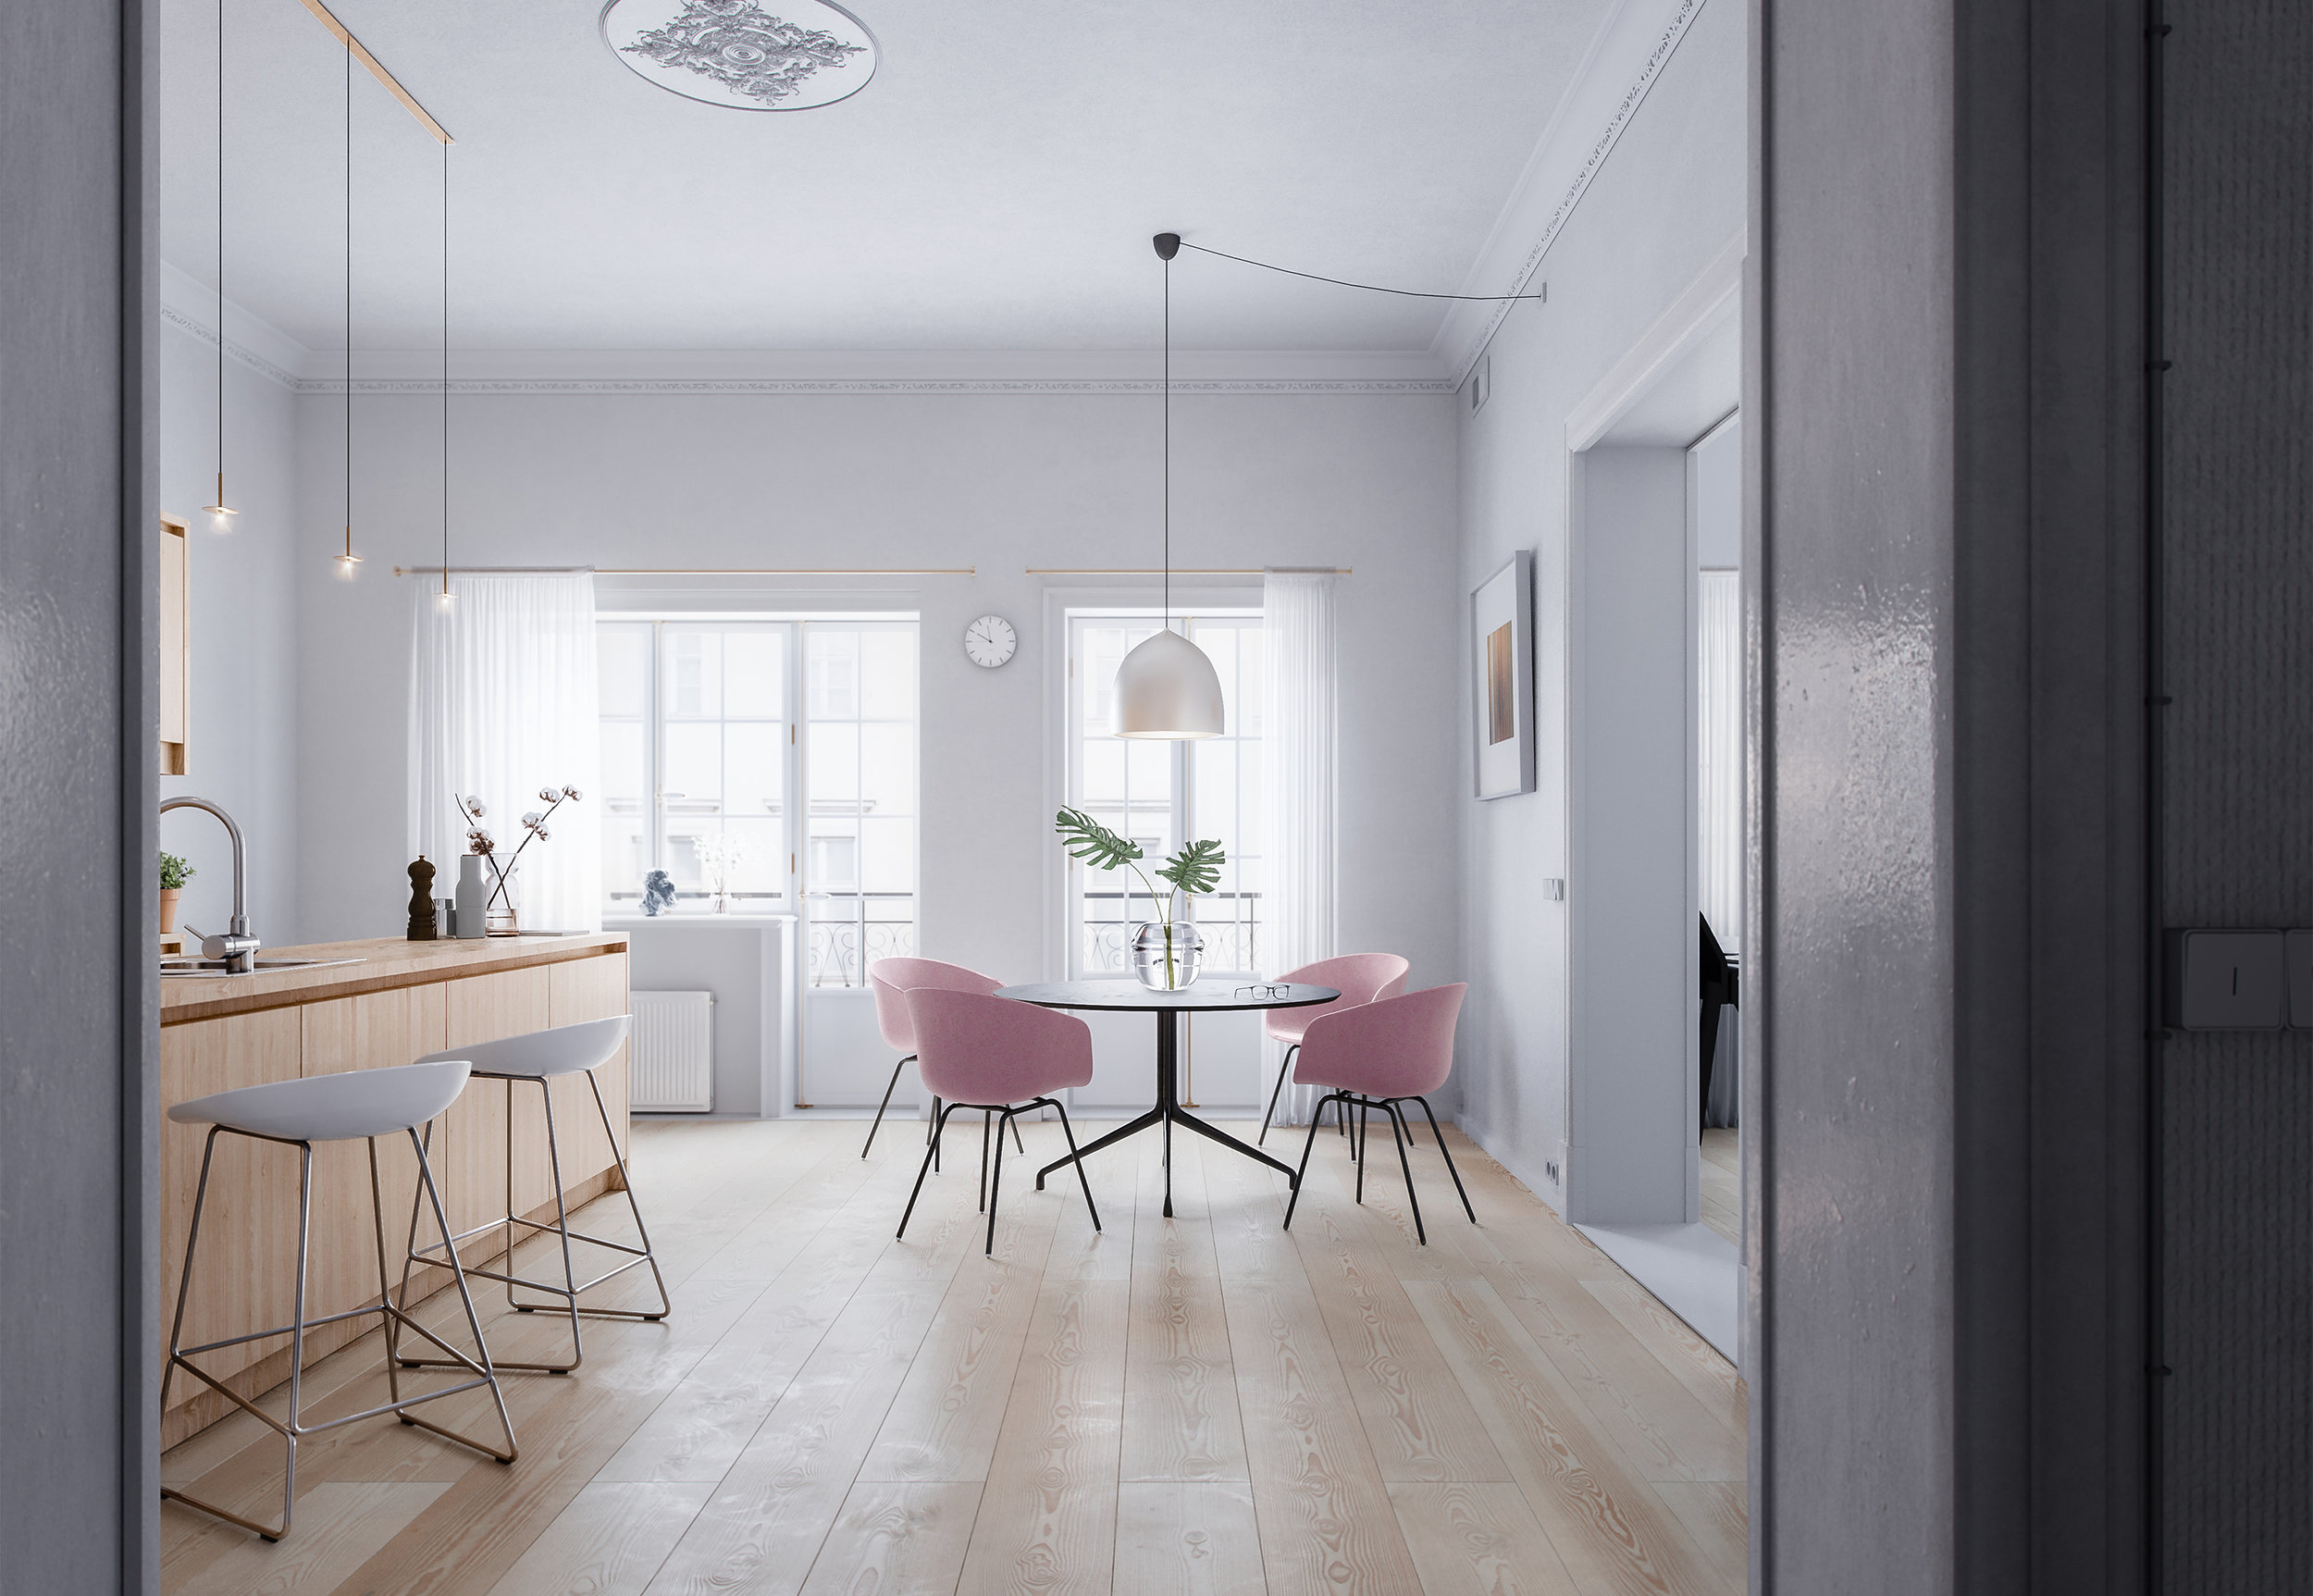 Nordic Living - Kitchen -  Visualisation by Mike Dugenio.jpg